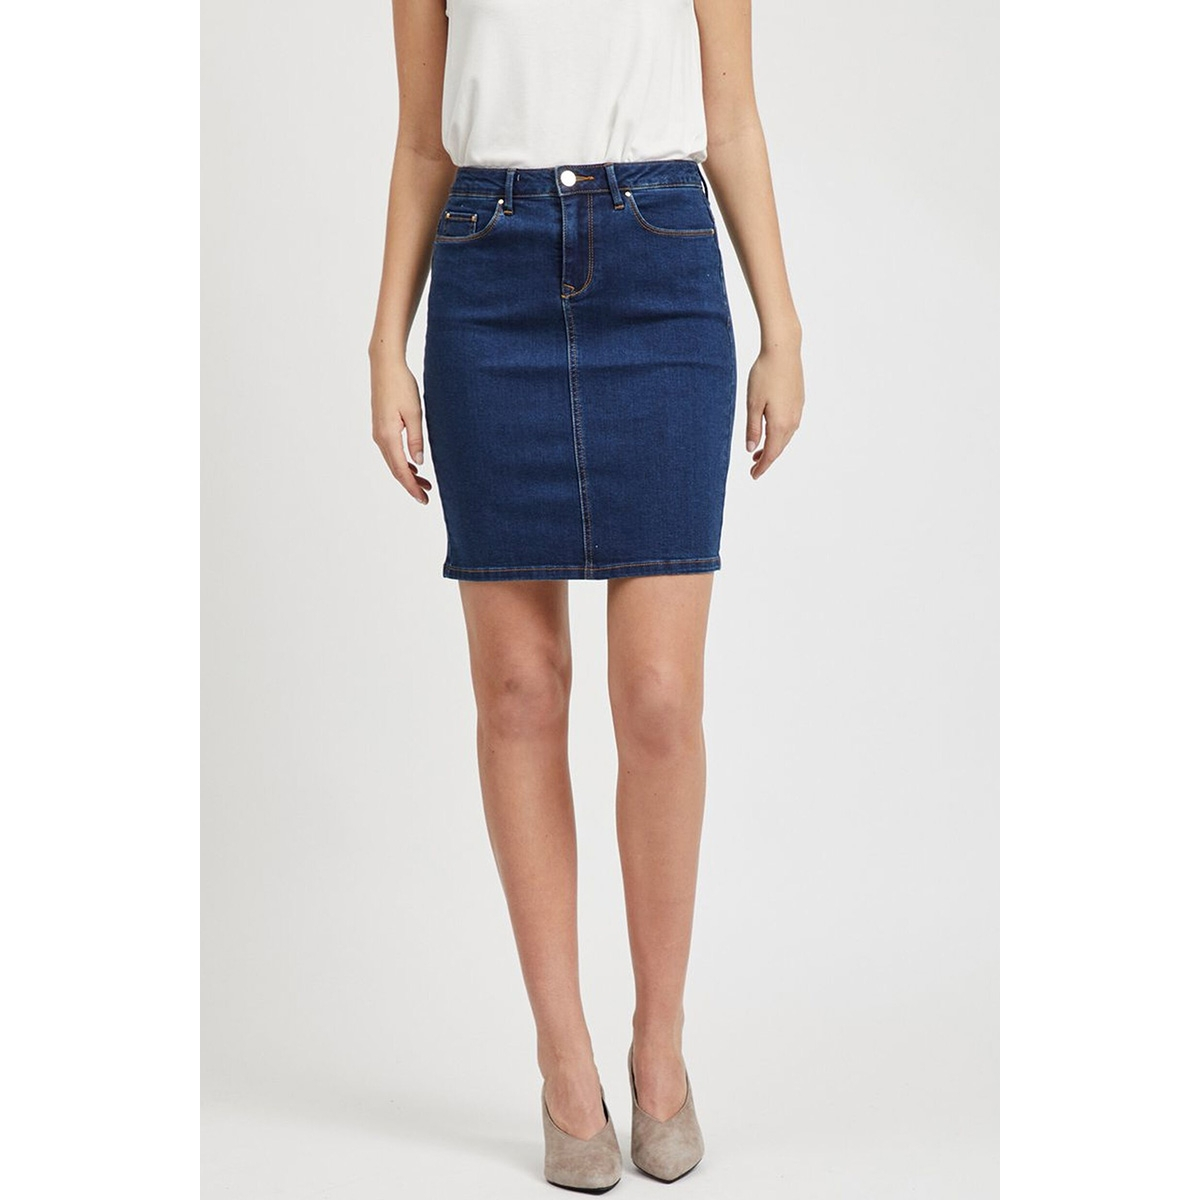 vicommit felicia short skirt v. mbd 14049875 vila rok medium blue denim